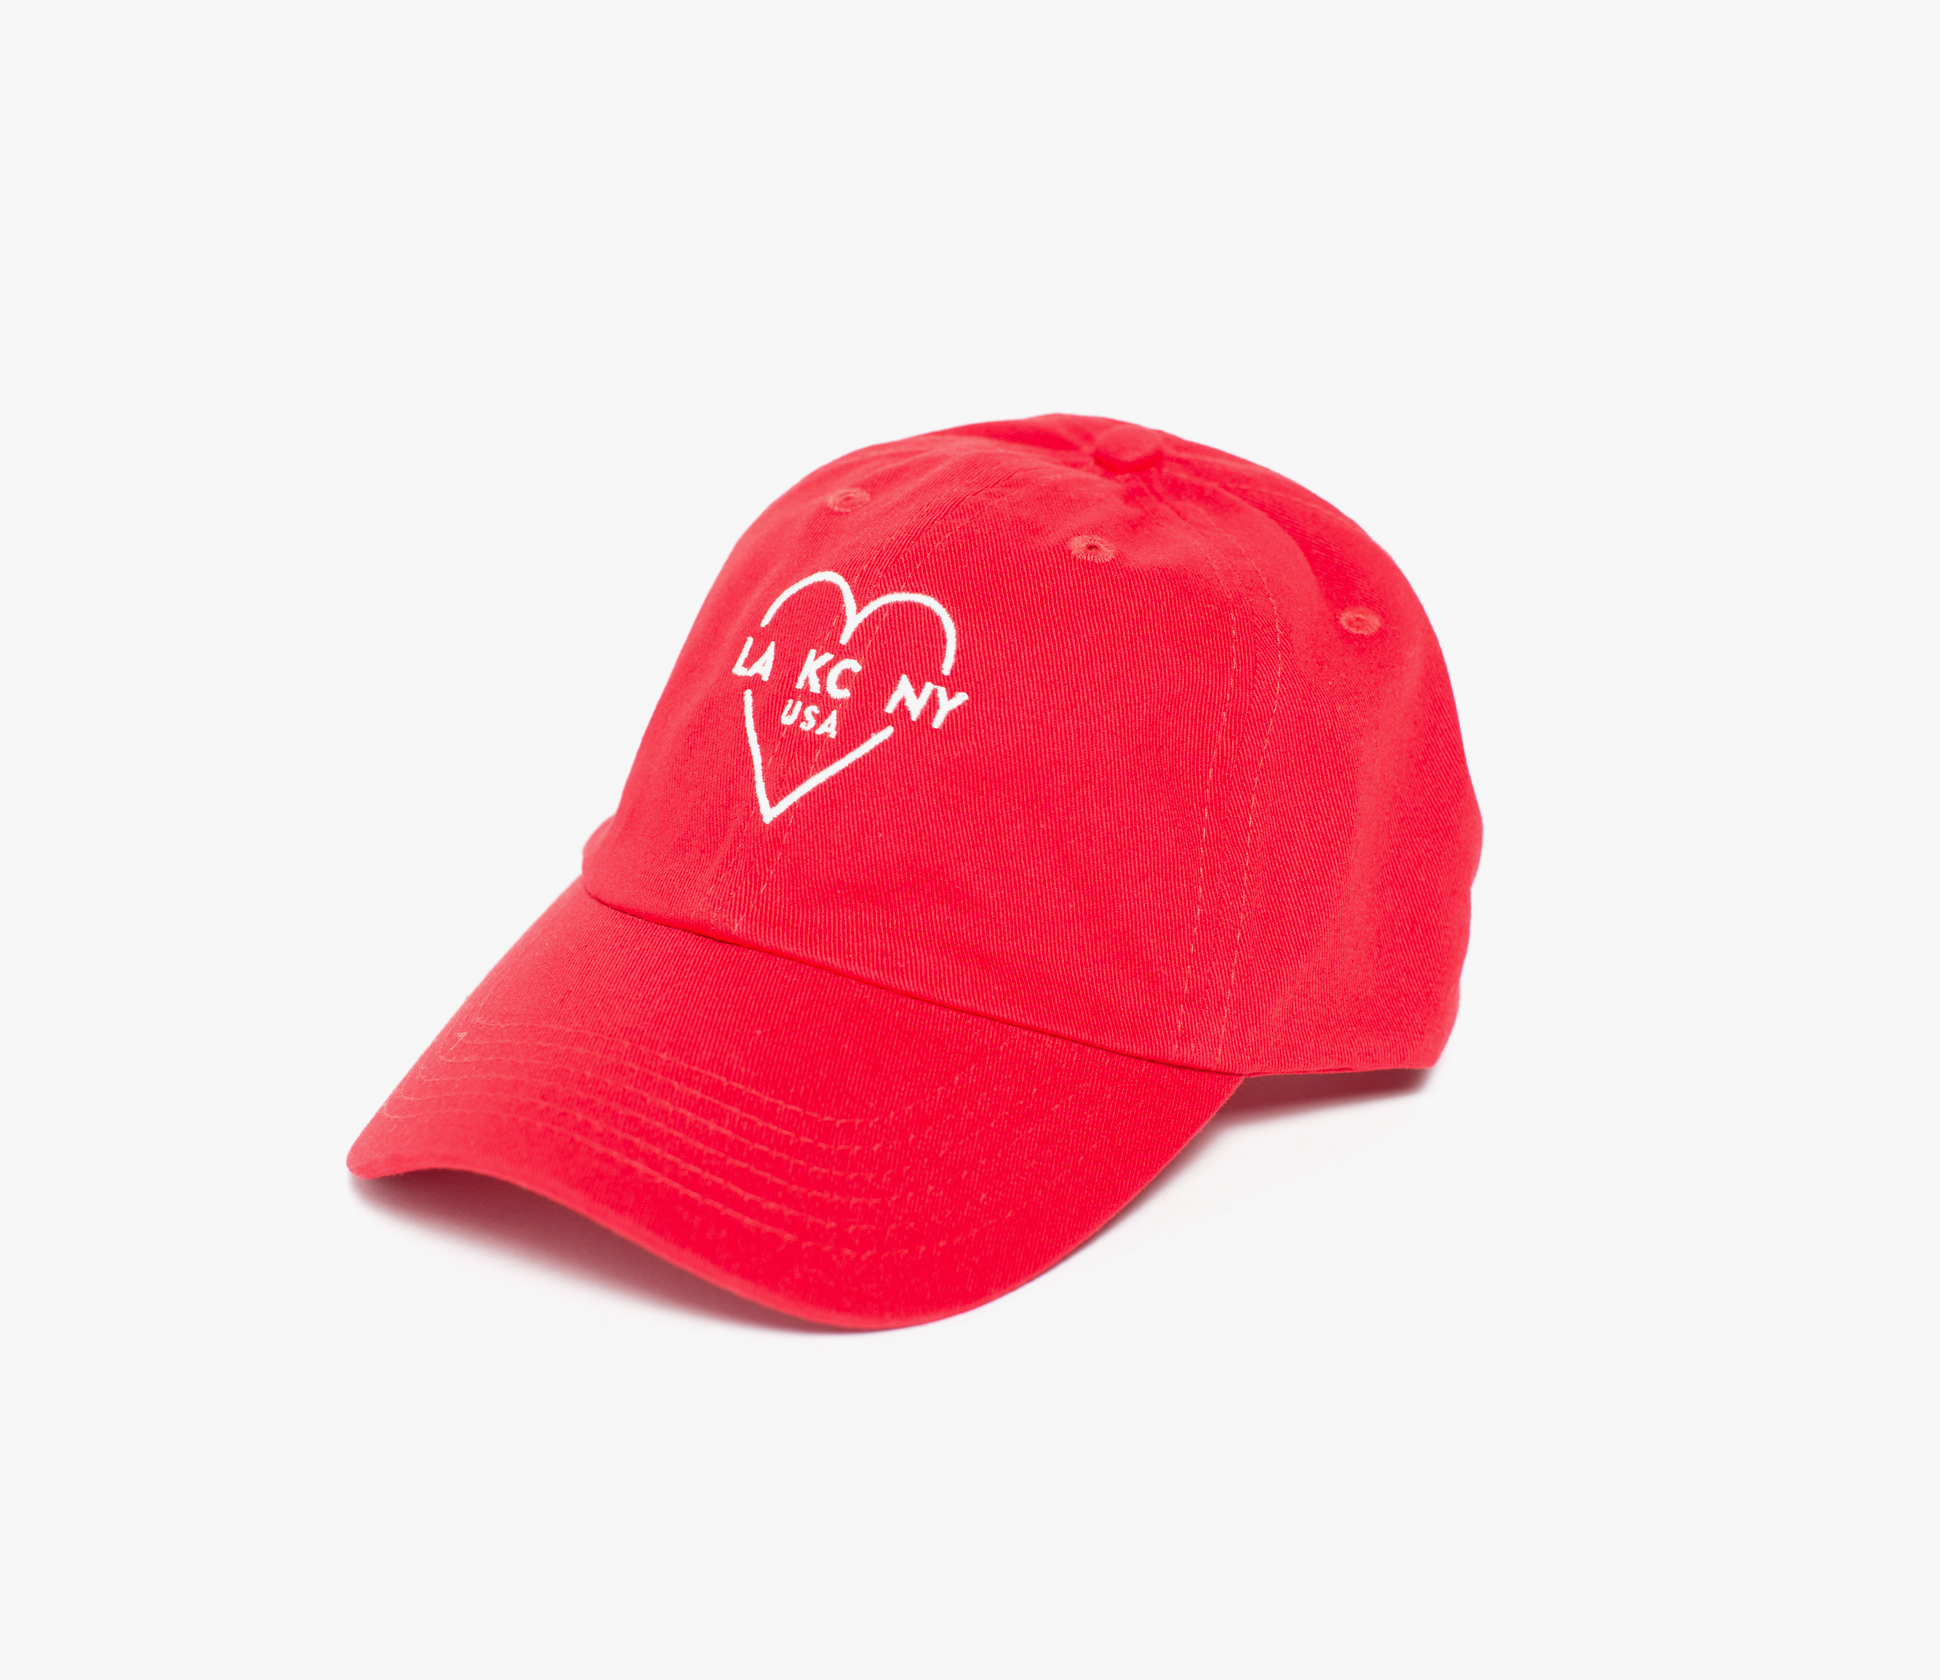 ... (red dad hat).  32.00 6f486f95ebe